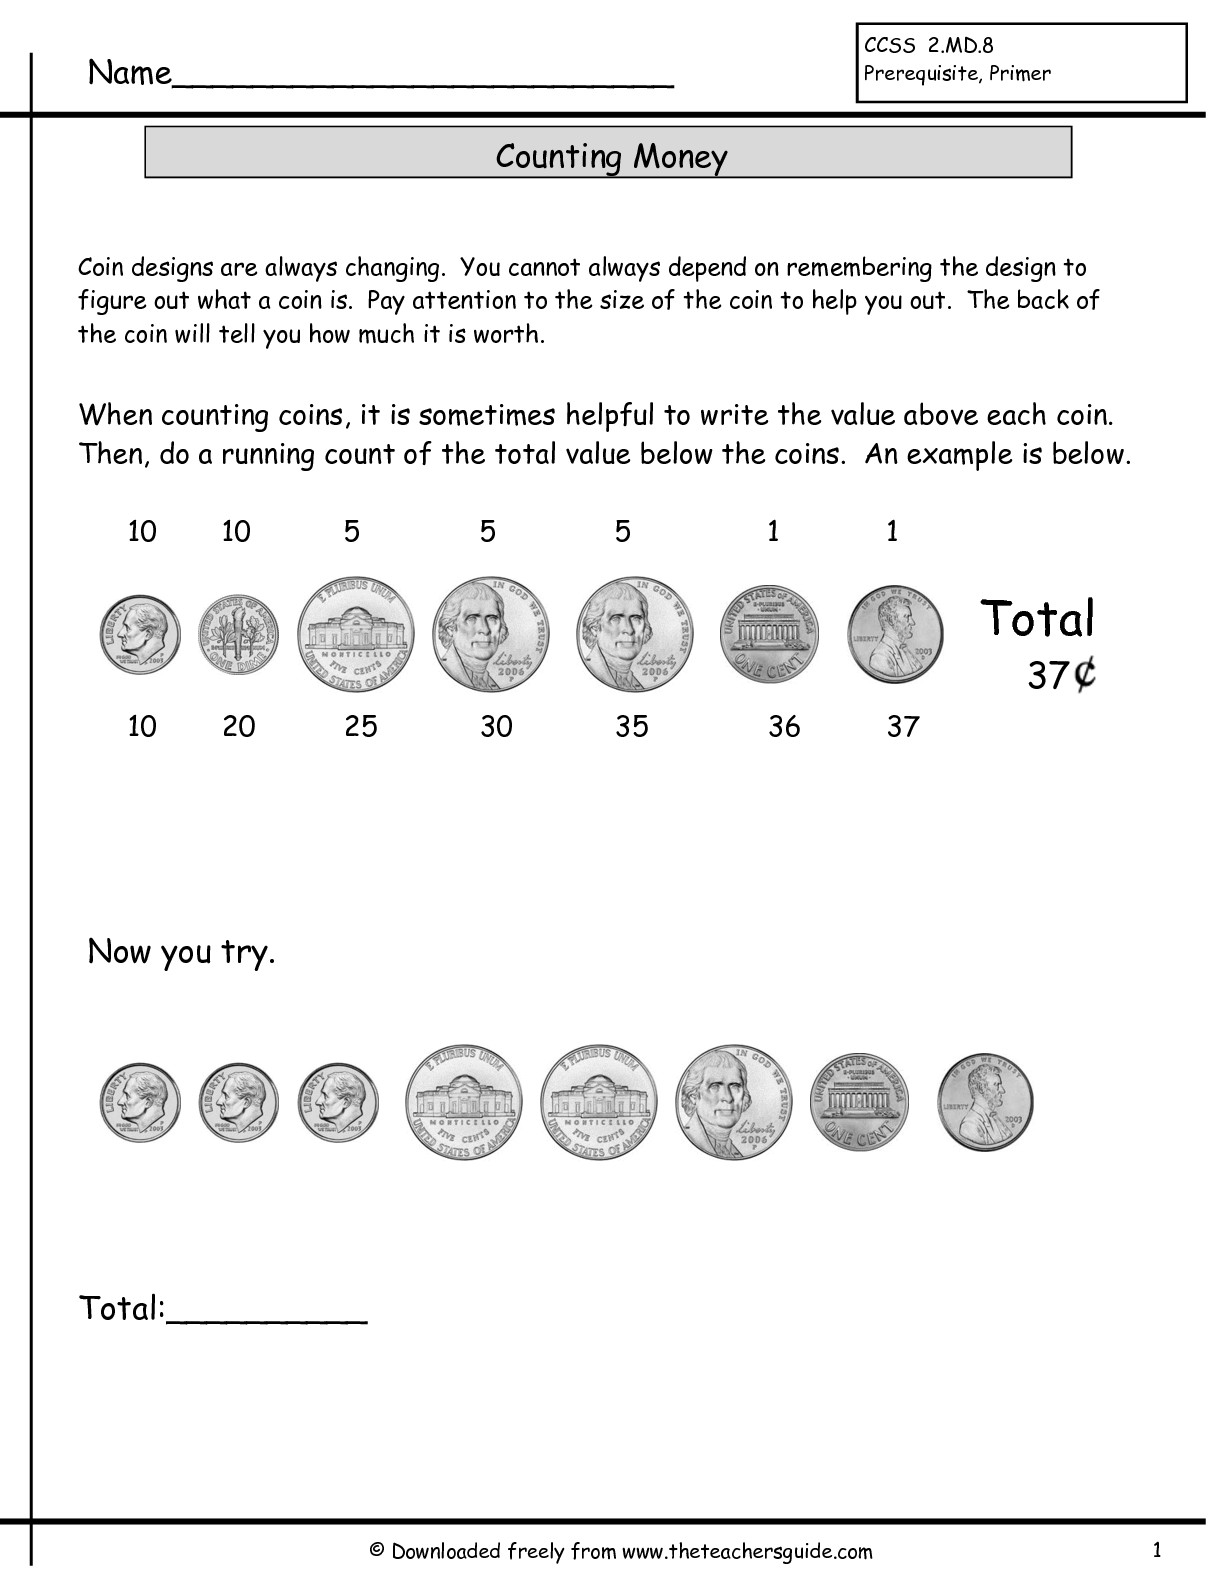 14 Best Images Of Practice Counting Money Worksheets